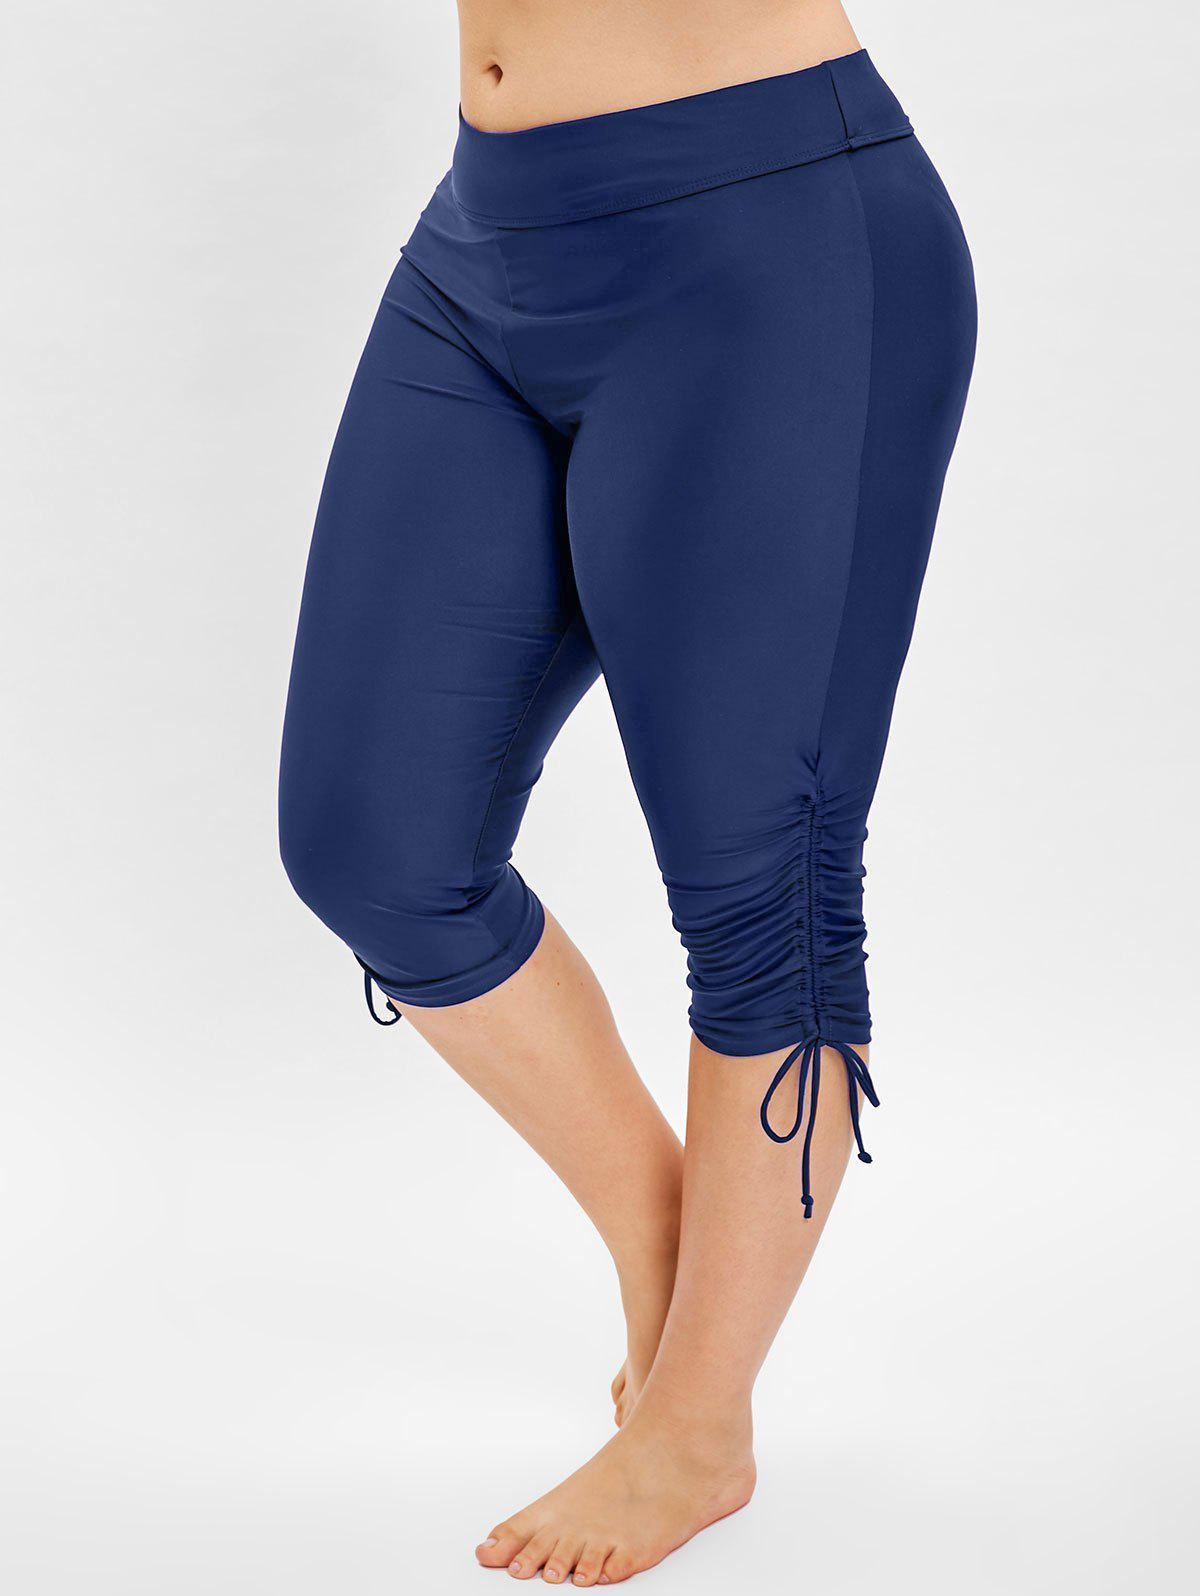 Best Side Drawstring Plus Size Knee Length Swim Pants